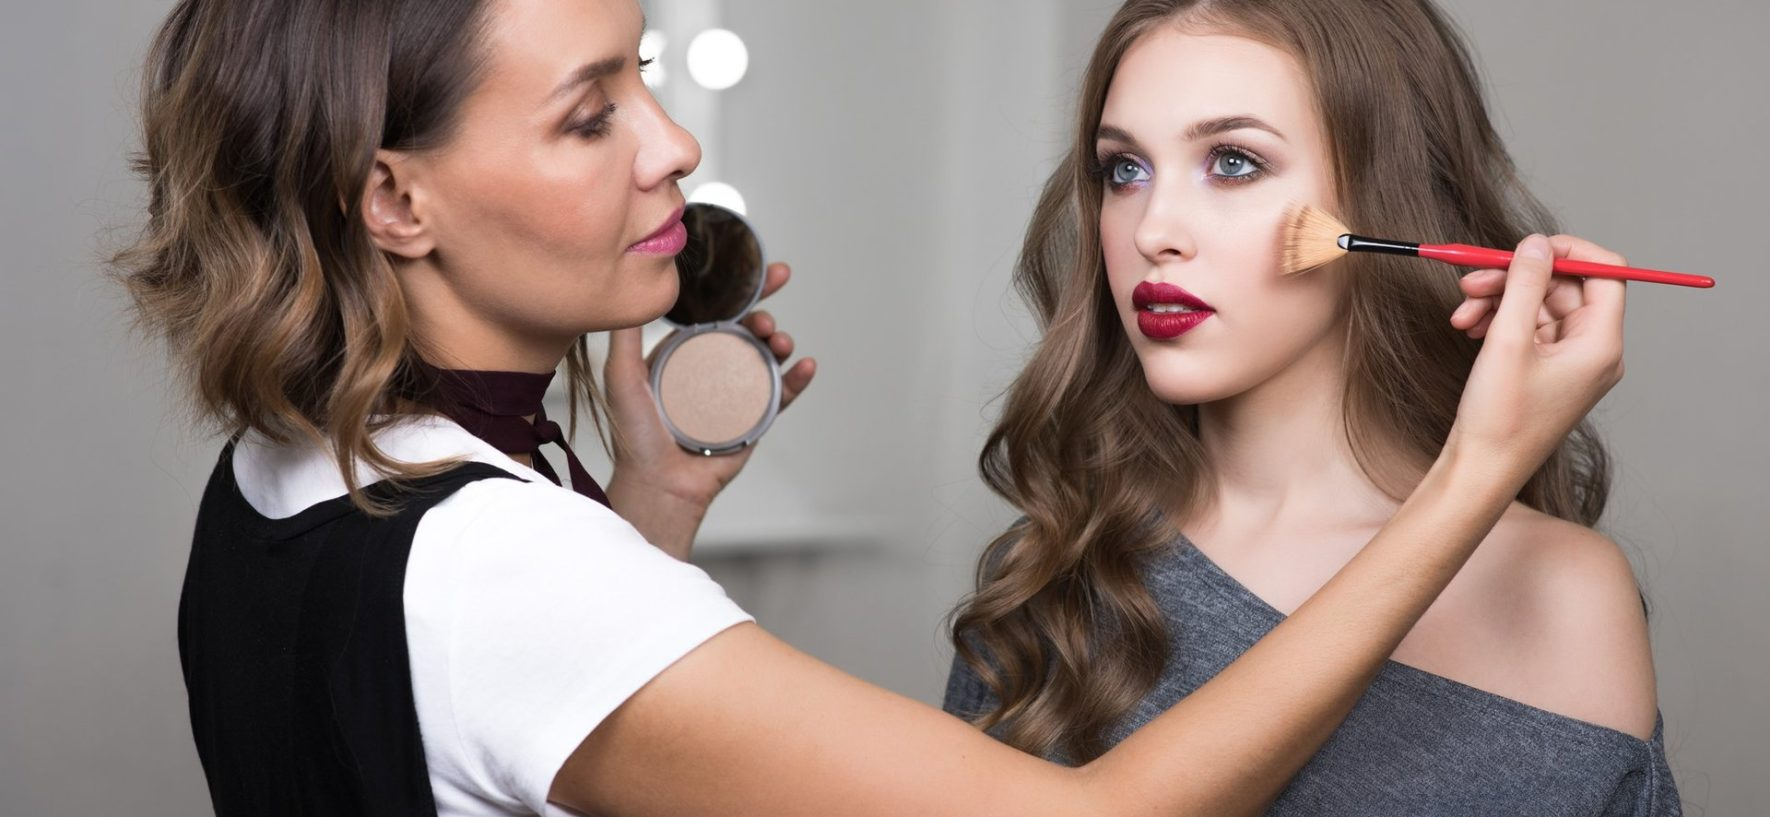 How To Make Your Makeup Lasts Longer Than Usual?